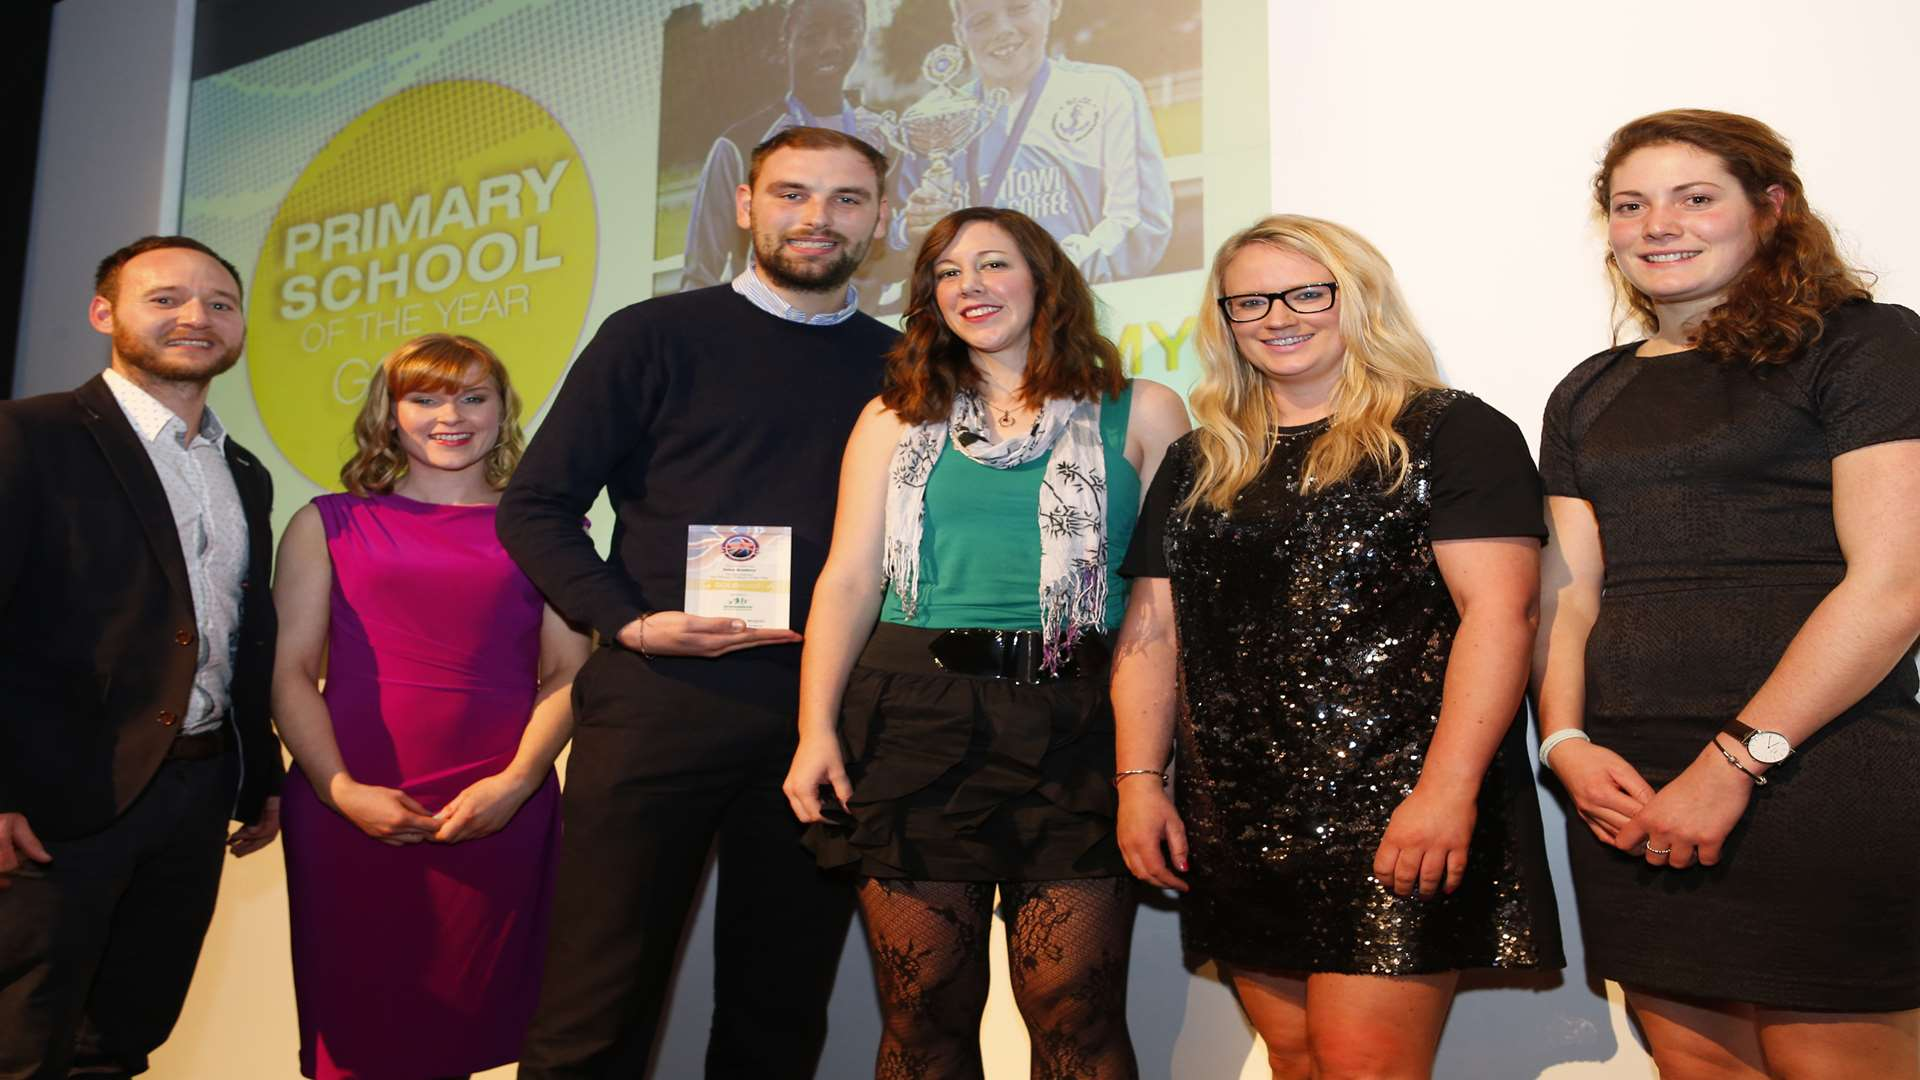 Primary School Team of the Year - Delce Academy. Picture: Andy Jones